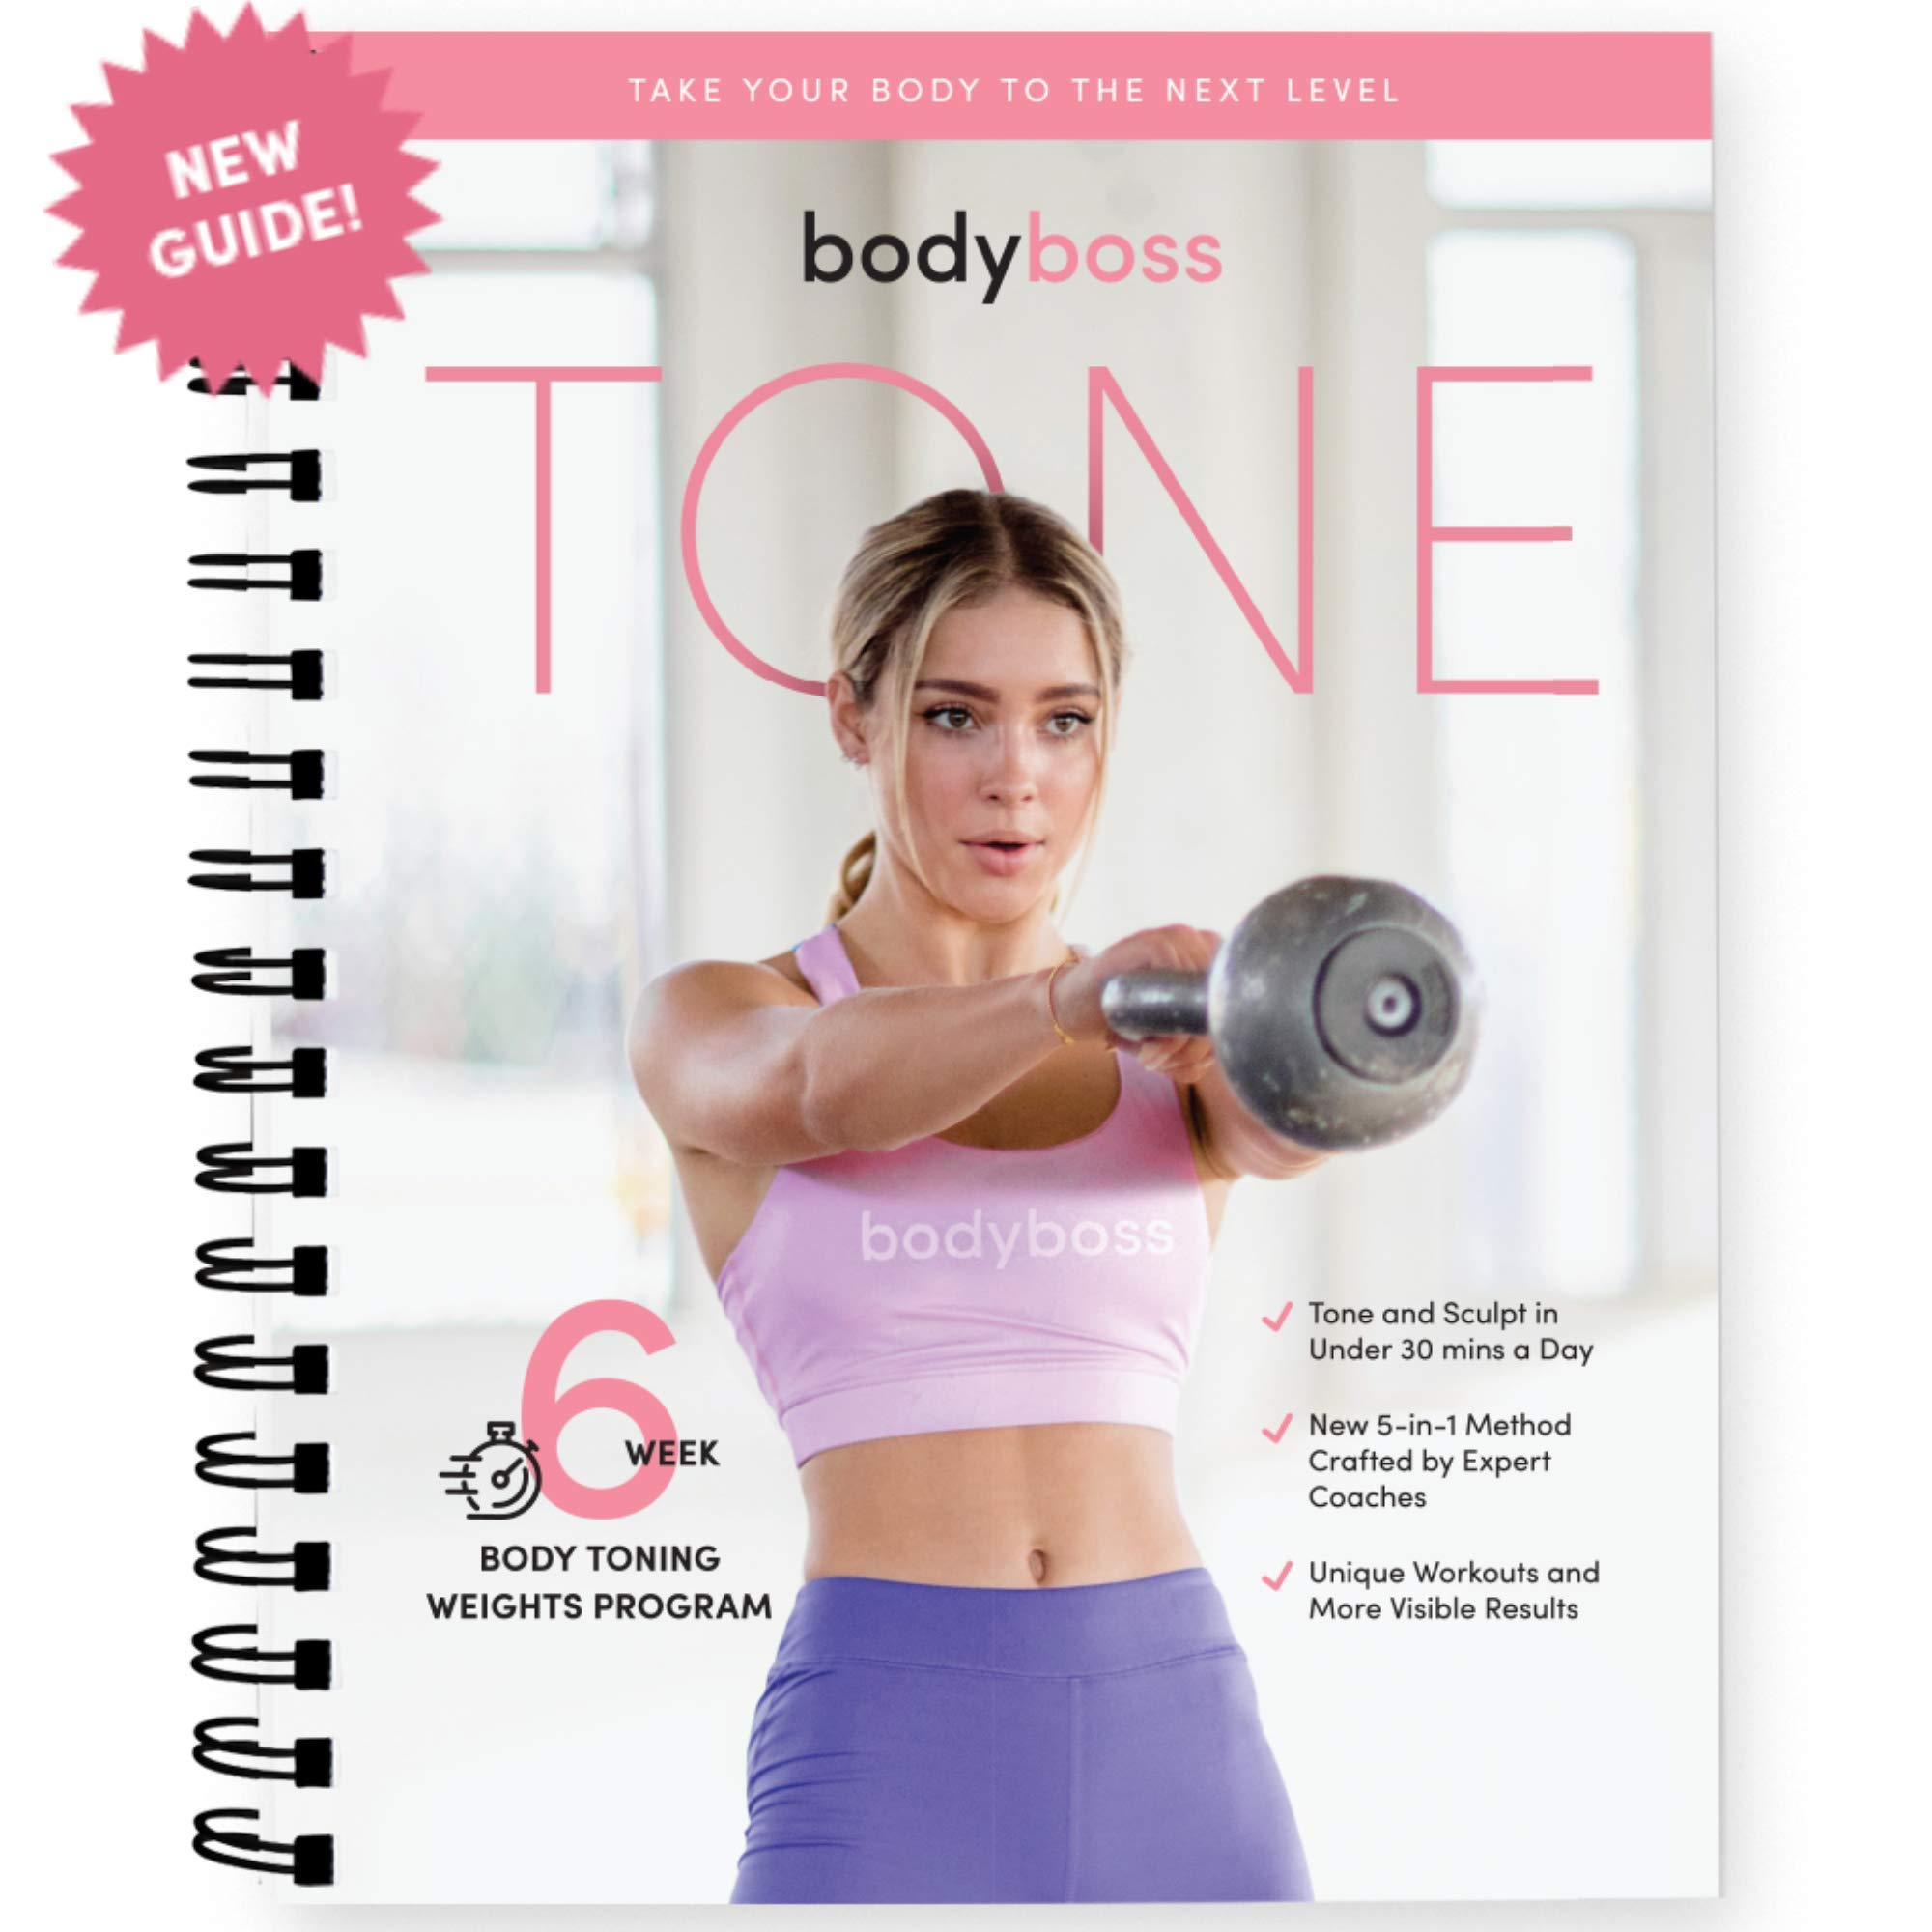 BodyBoss Tone Guide. Weight & Strength Workout Training for Women. by BodyBoss